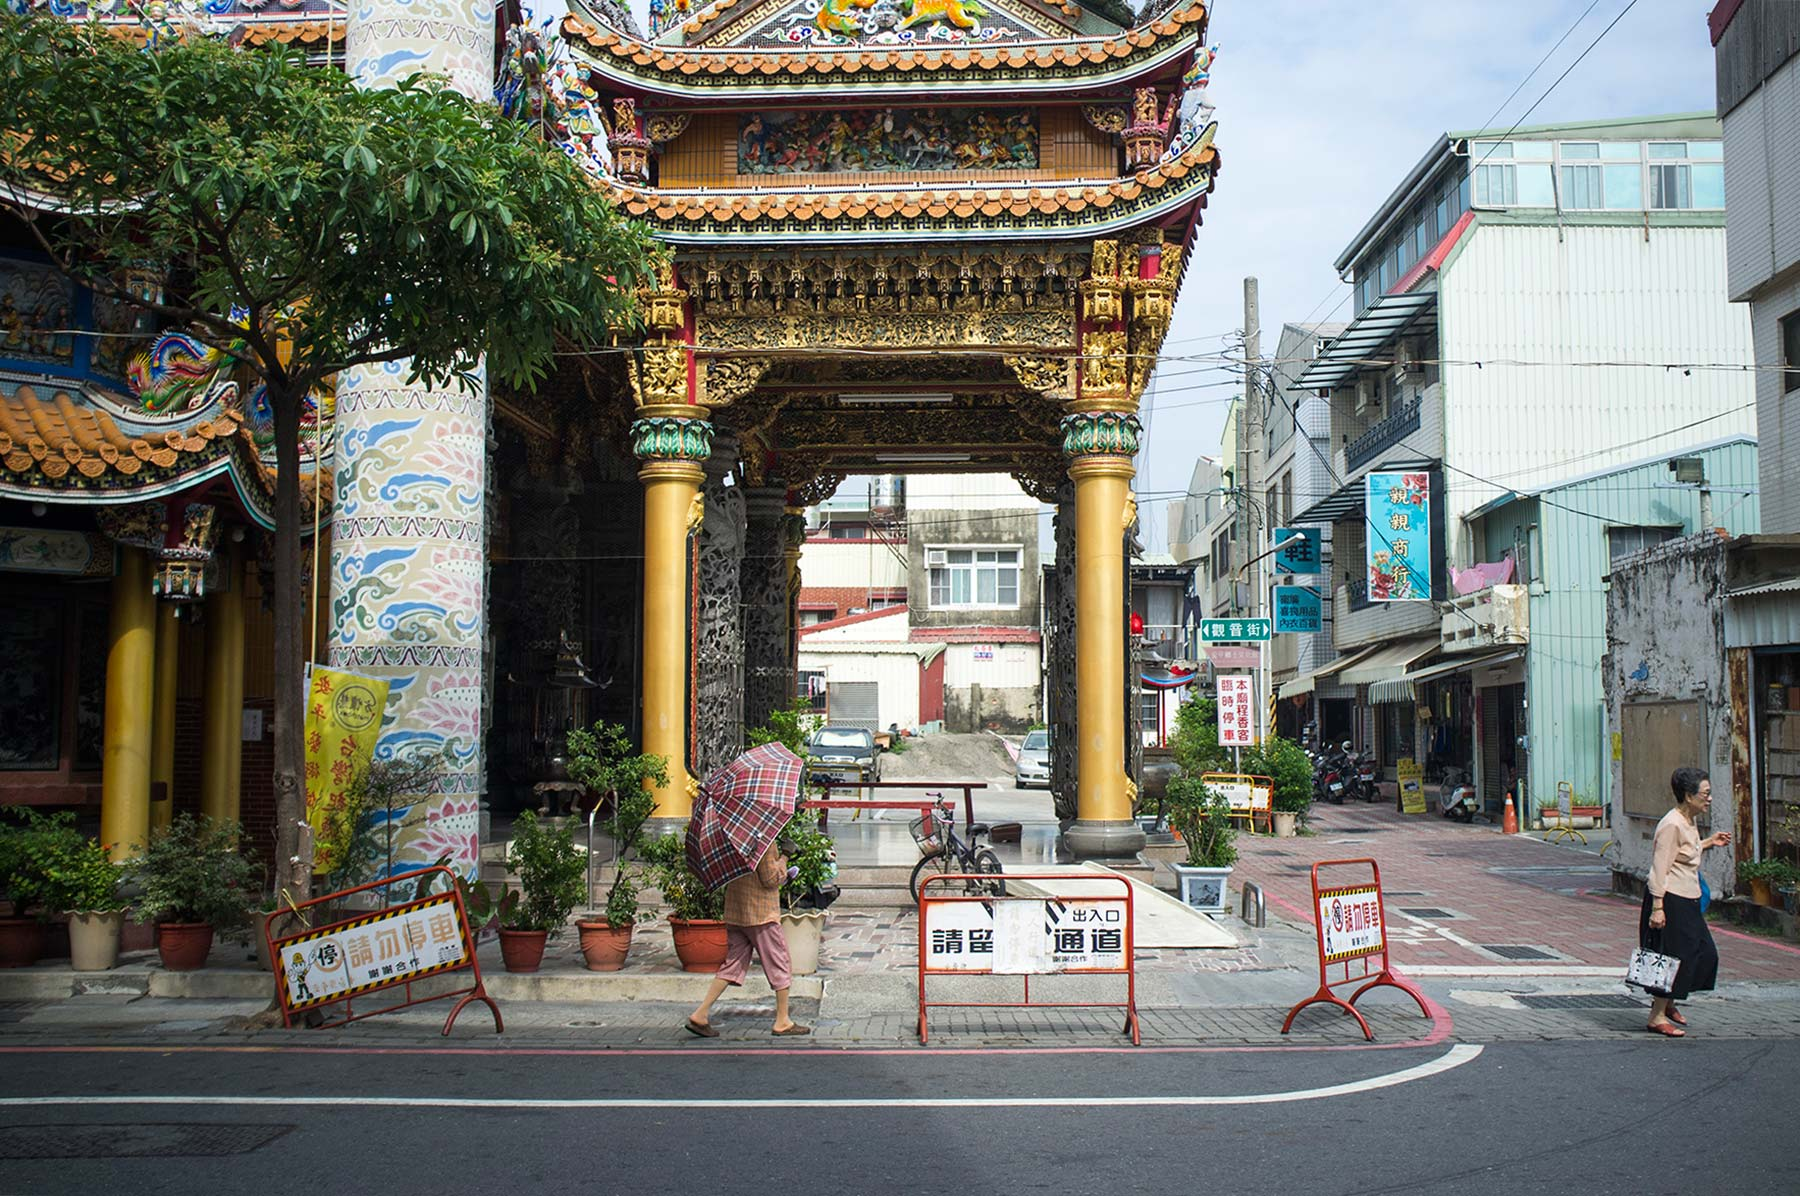 Entrance gate to the temple.